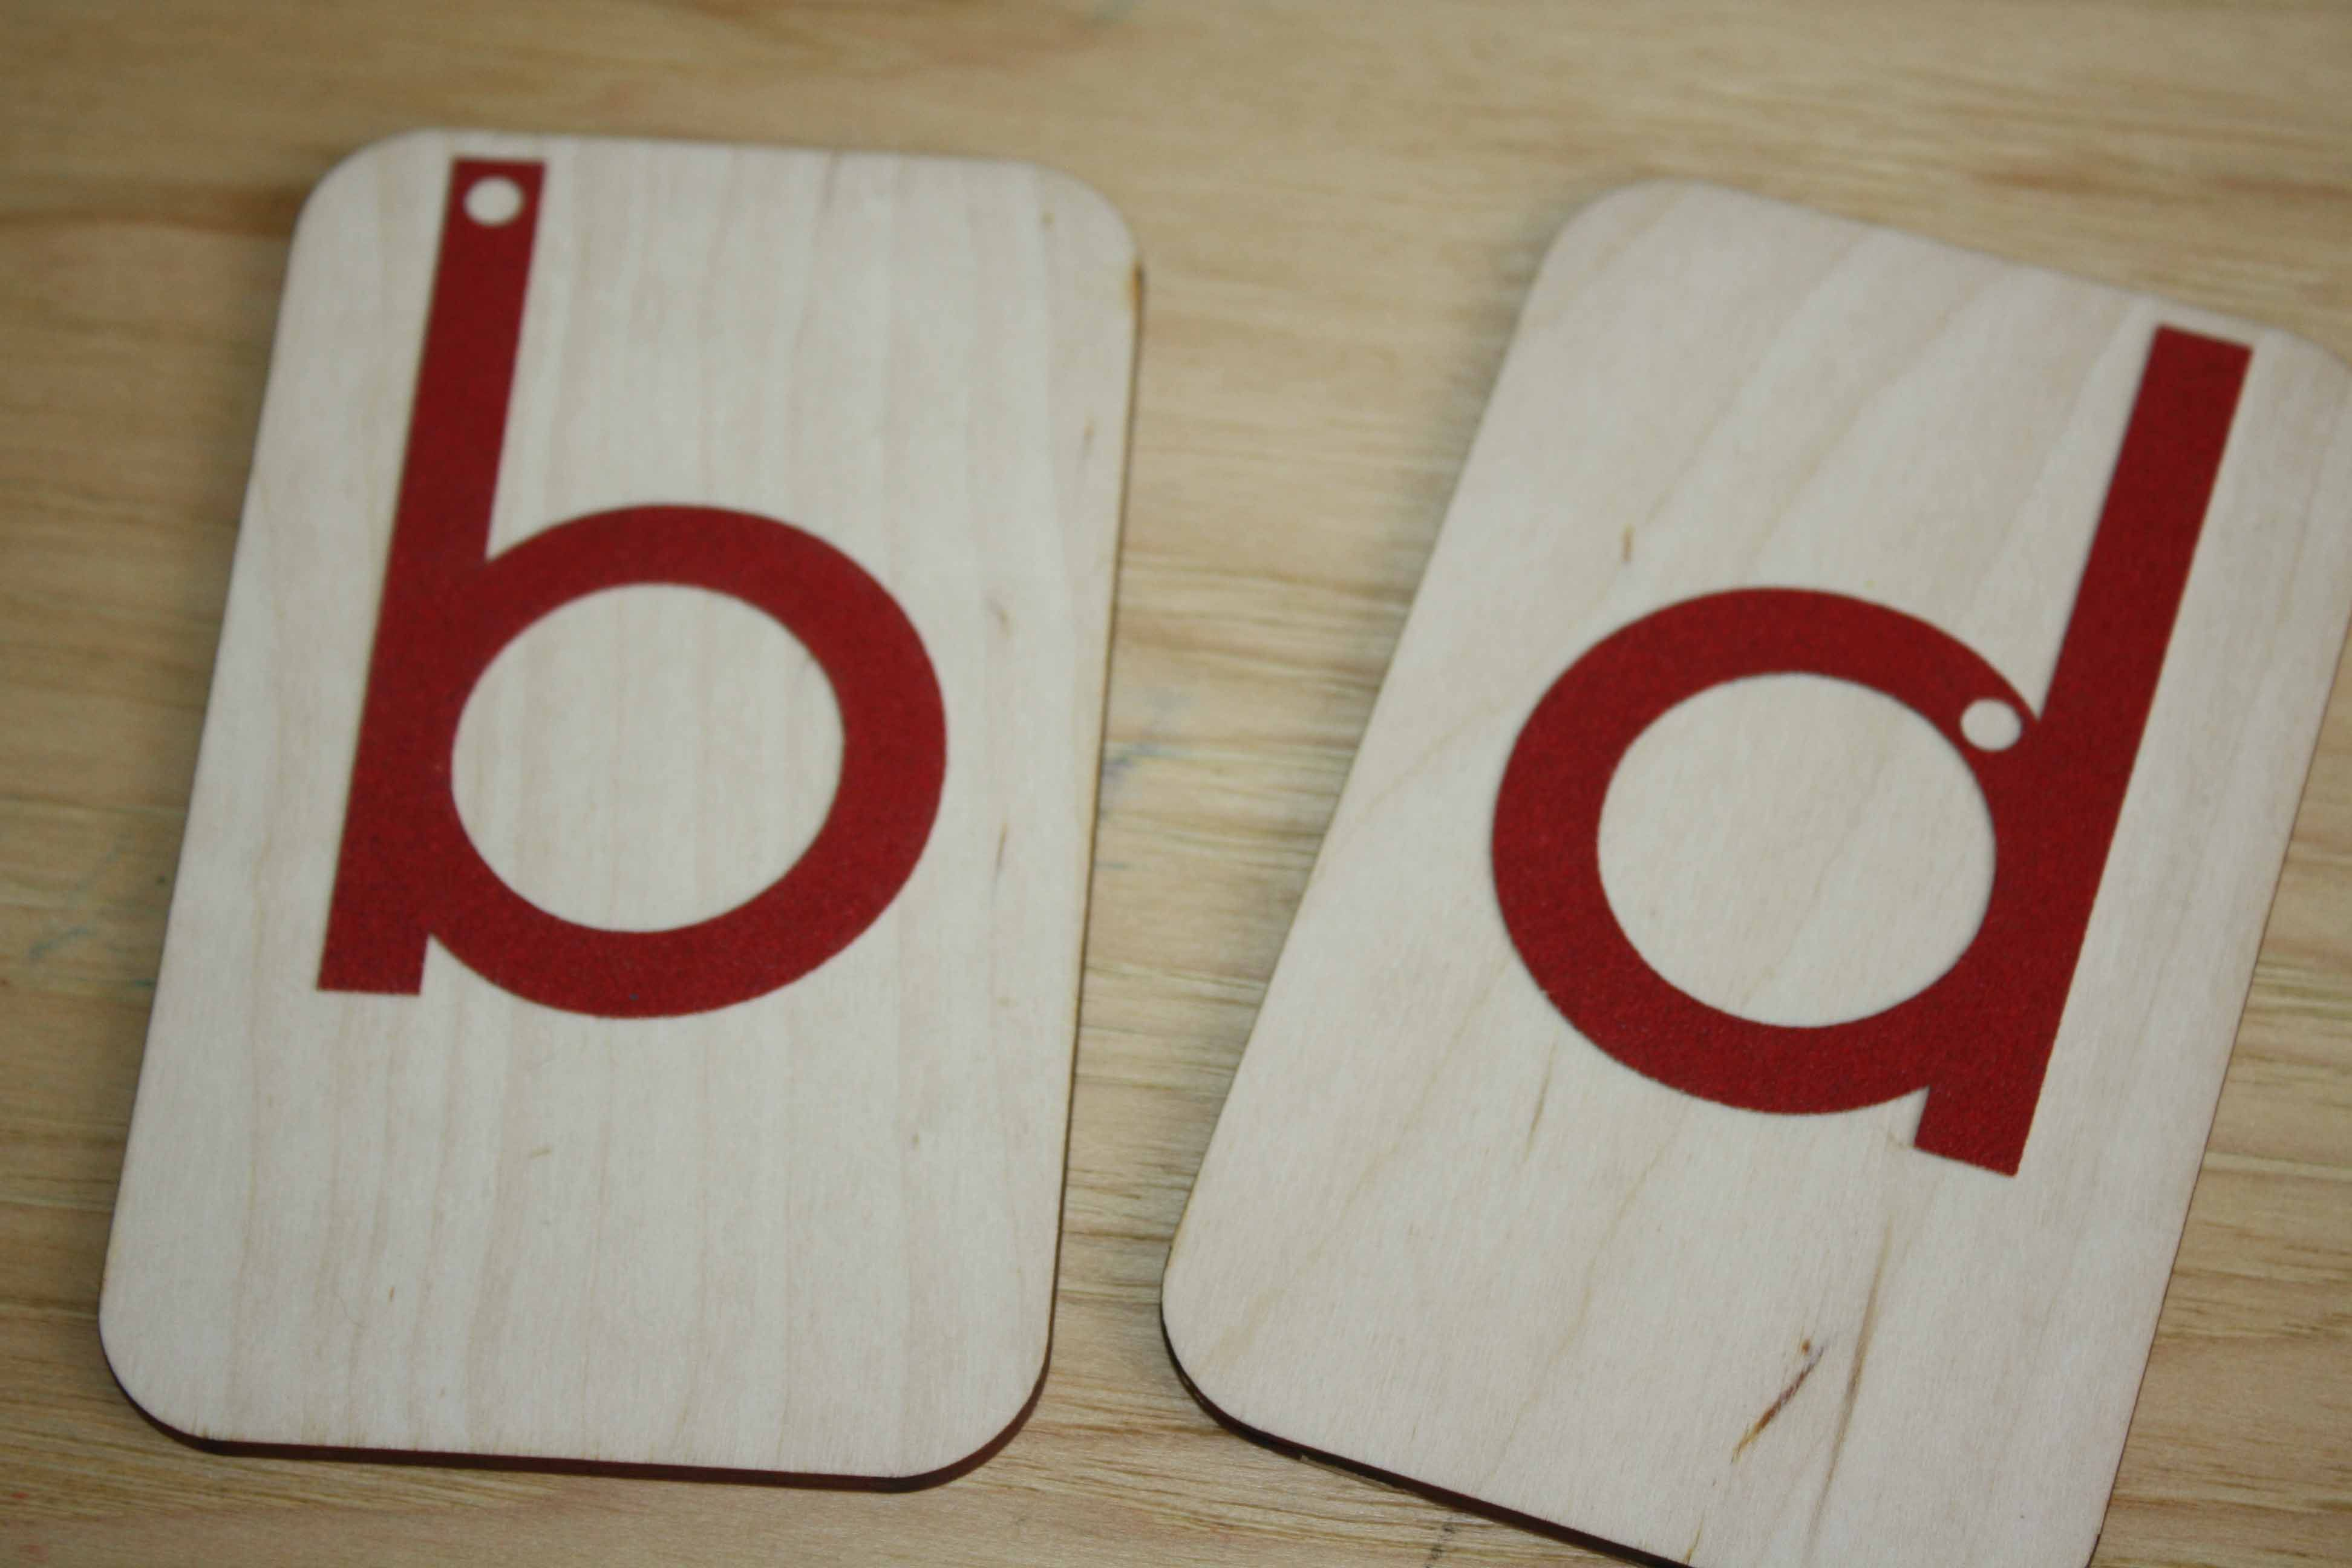 4 Tricks For Helping Students Correct B D Letter Reversals